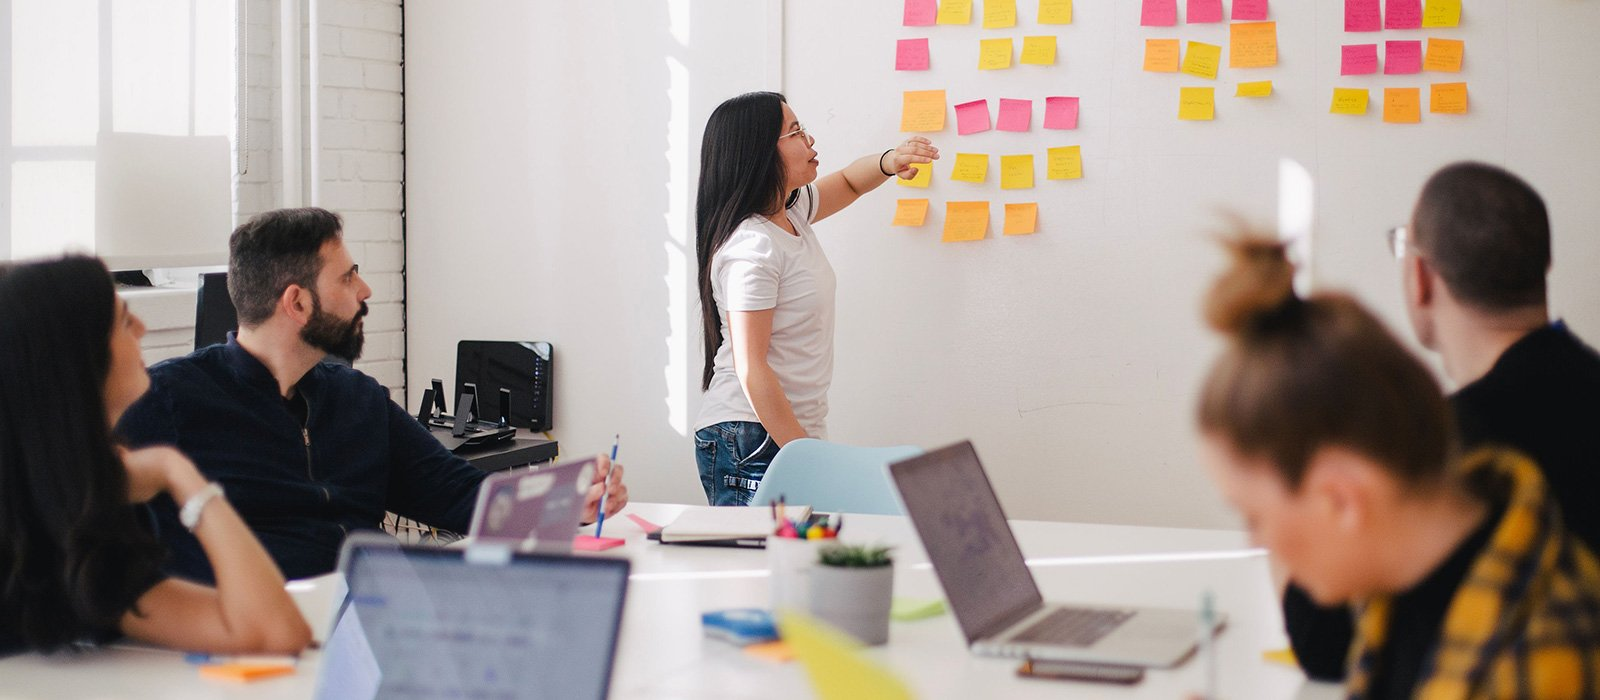 A team working with post-its on a whiteboard.